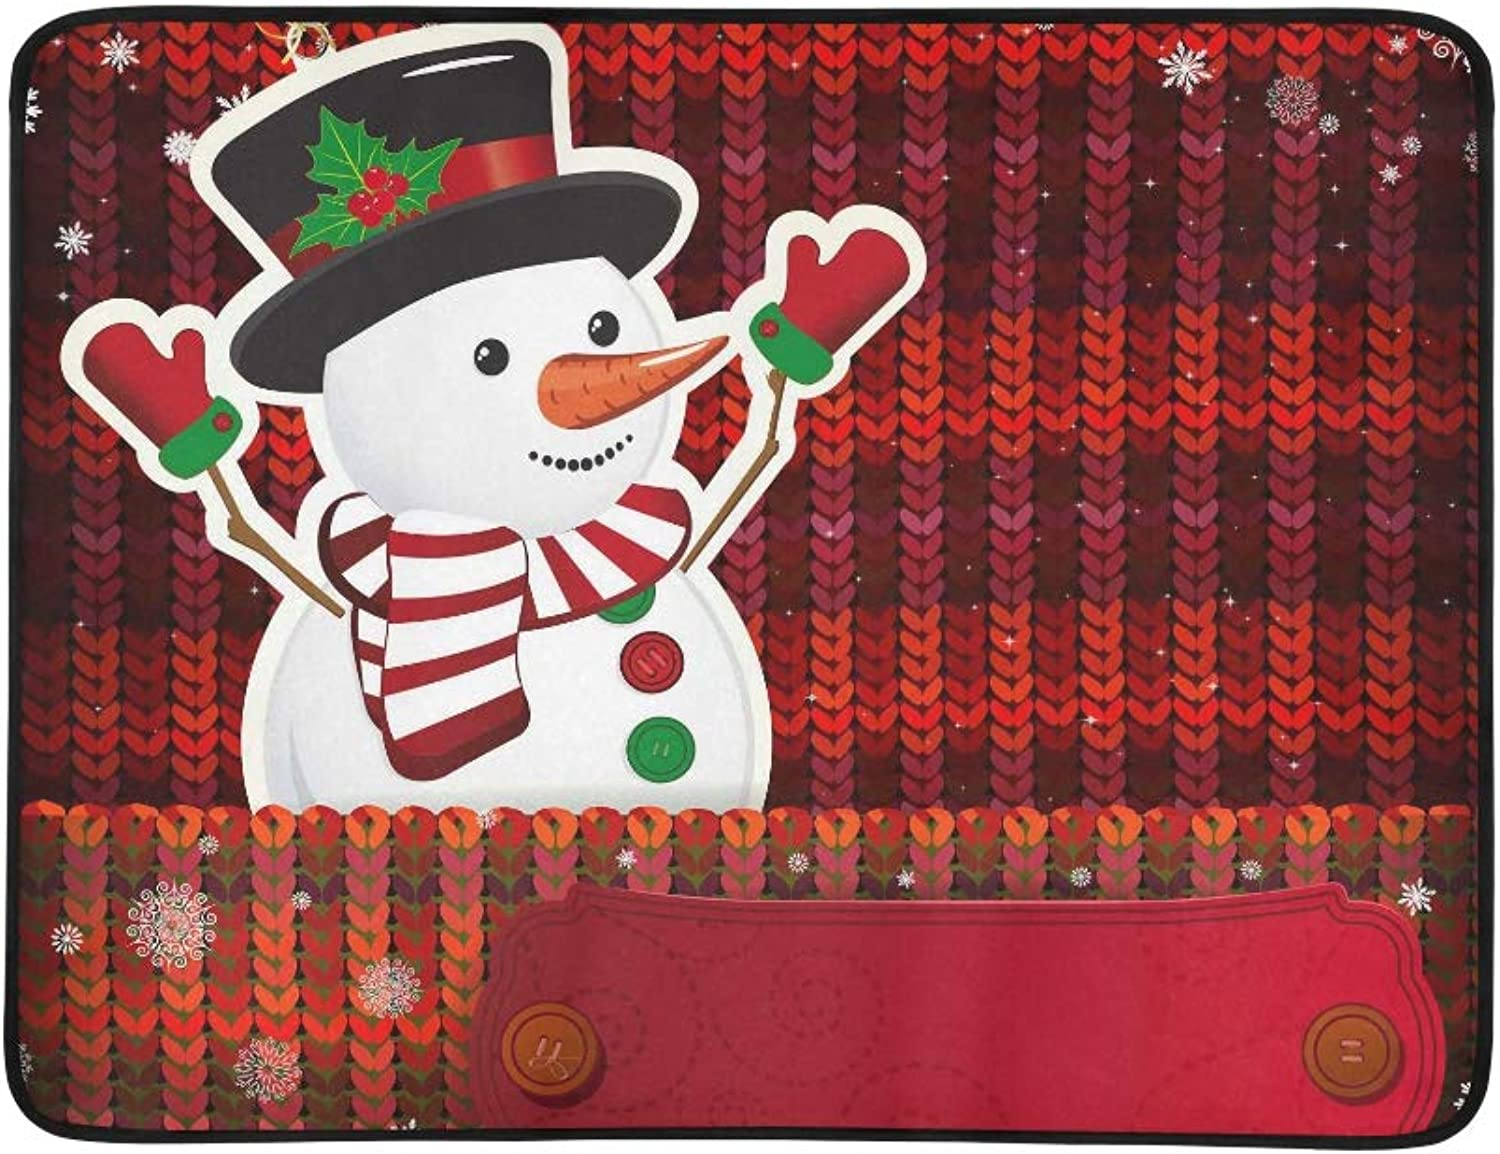 Christmas Decorations On Handmade Knitted Backgrou Pattern Portable and Foldable Blanket Mat 60x78 Inch Handy Mat for Camping Picnic Beach Indoor Outdoor Travel